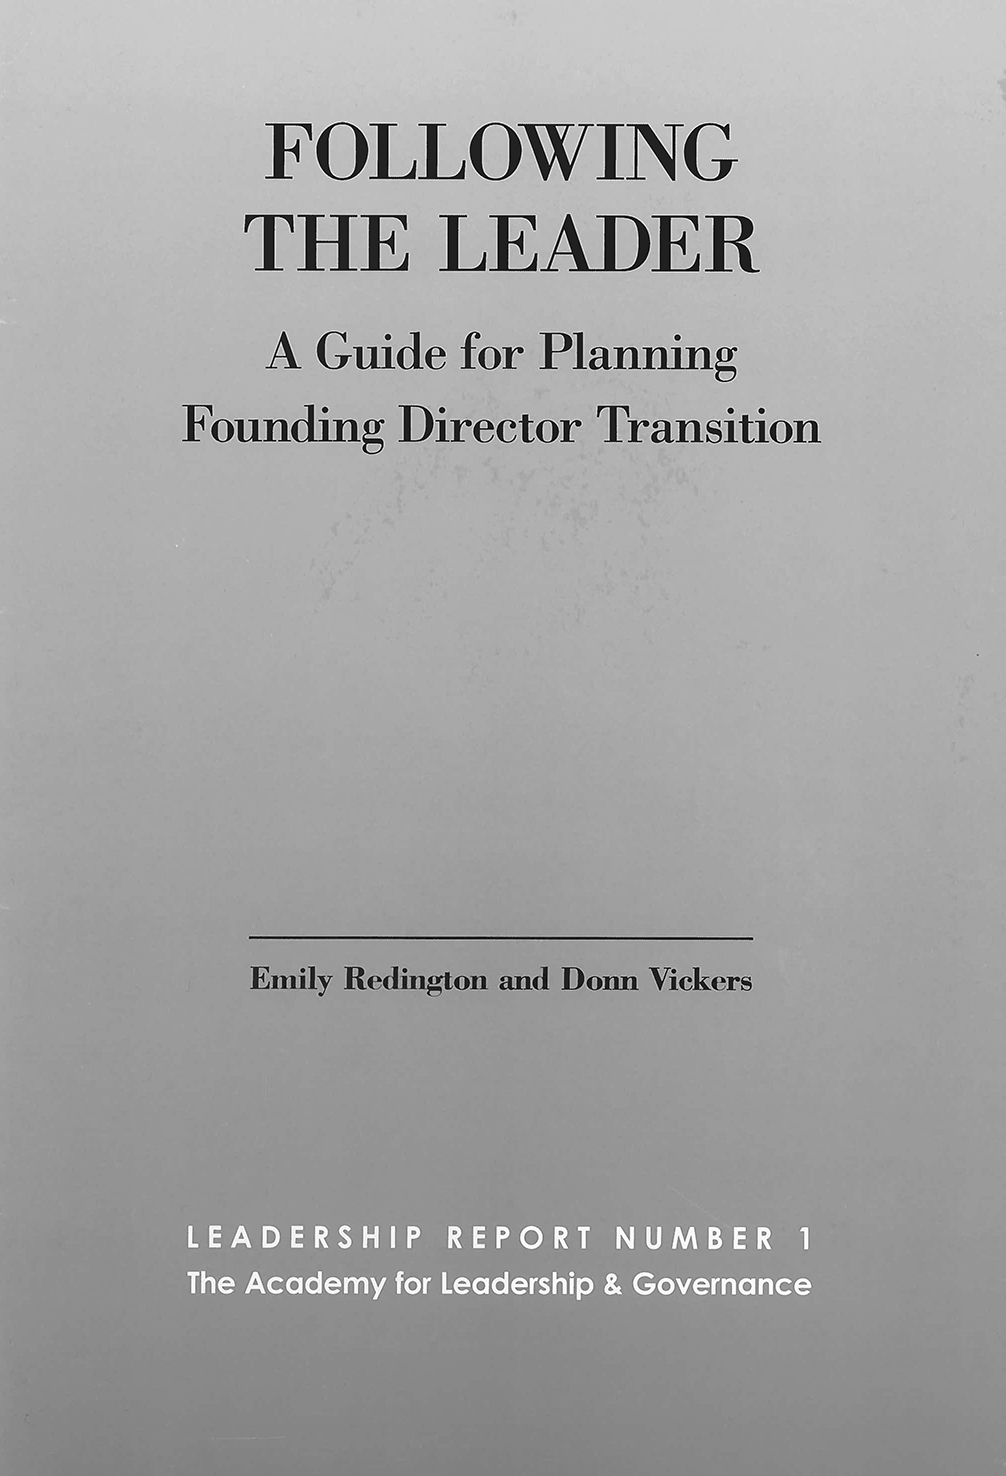 Following the Leader book cover